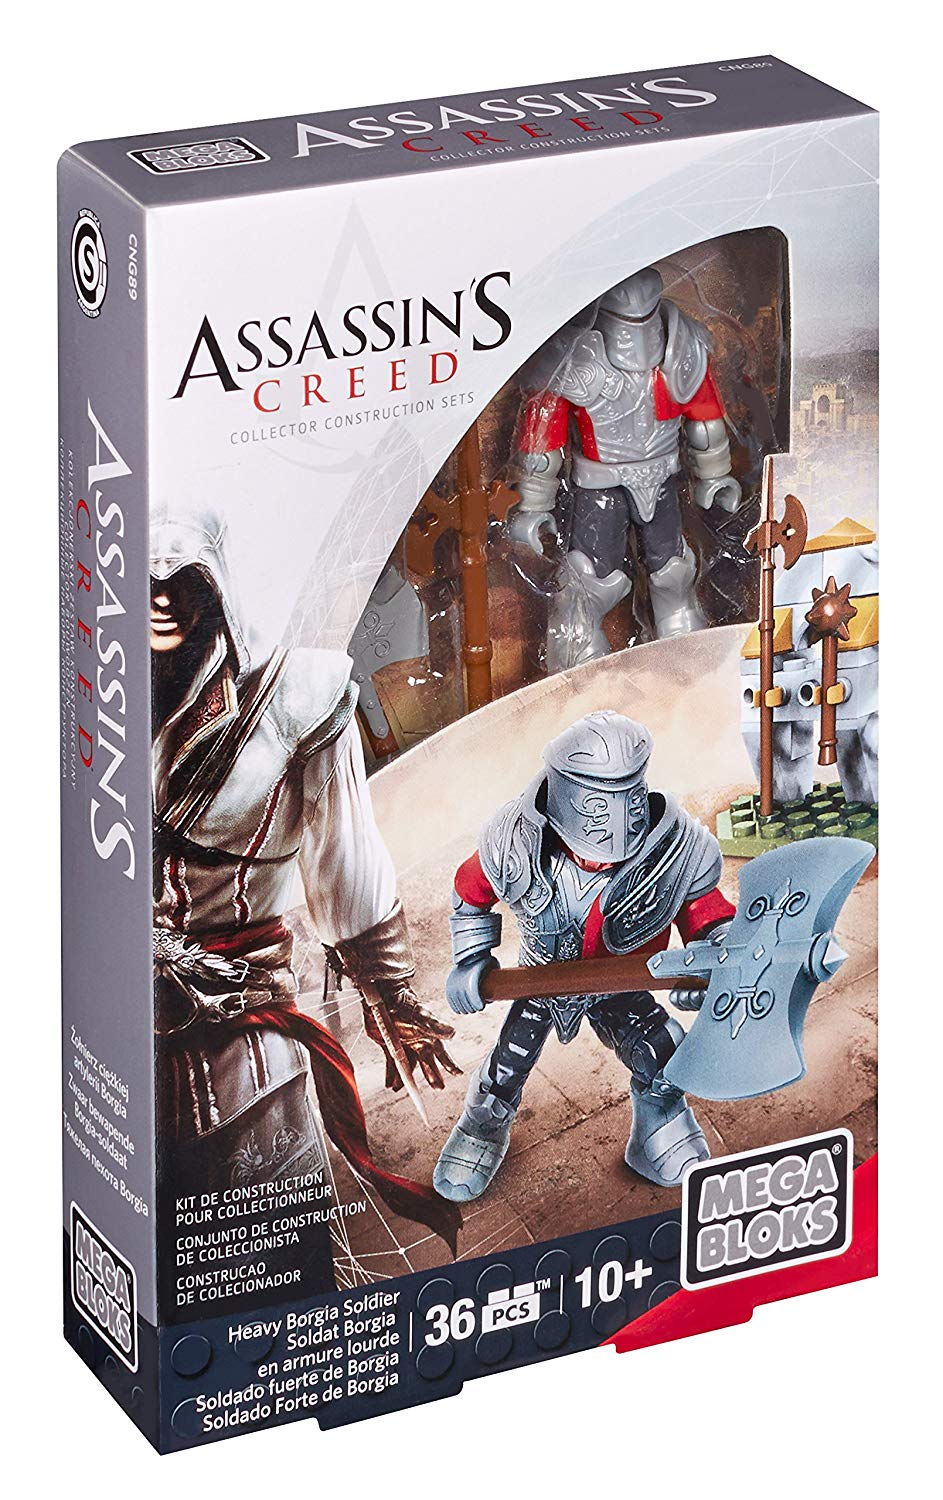 Heavy Borgia Soldier - 2015 Assassin's Creed Mega Bloks Set CNG89 is an officially licensed, authentic product at B.A. Toys featuring this Heavy Borgia Soldier by Assassin's Creed